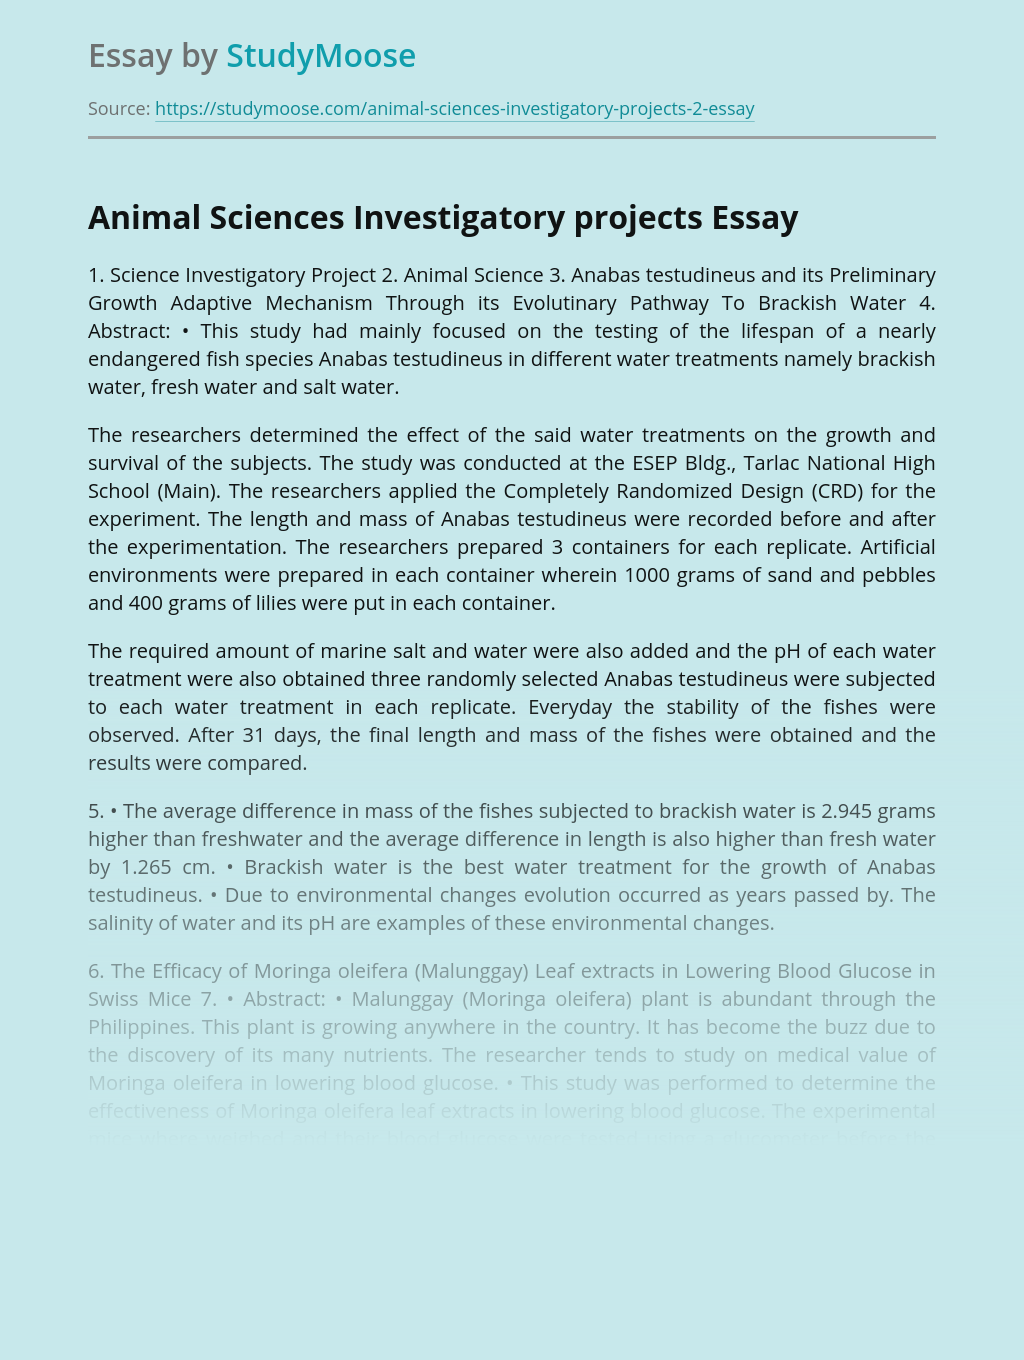 Animal Sciences Investigatory projects